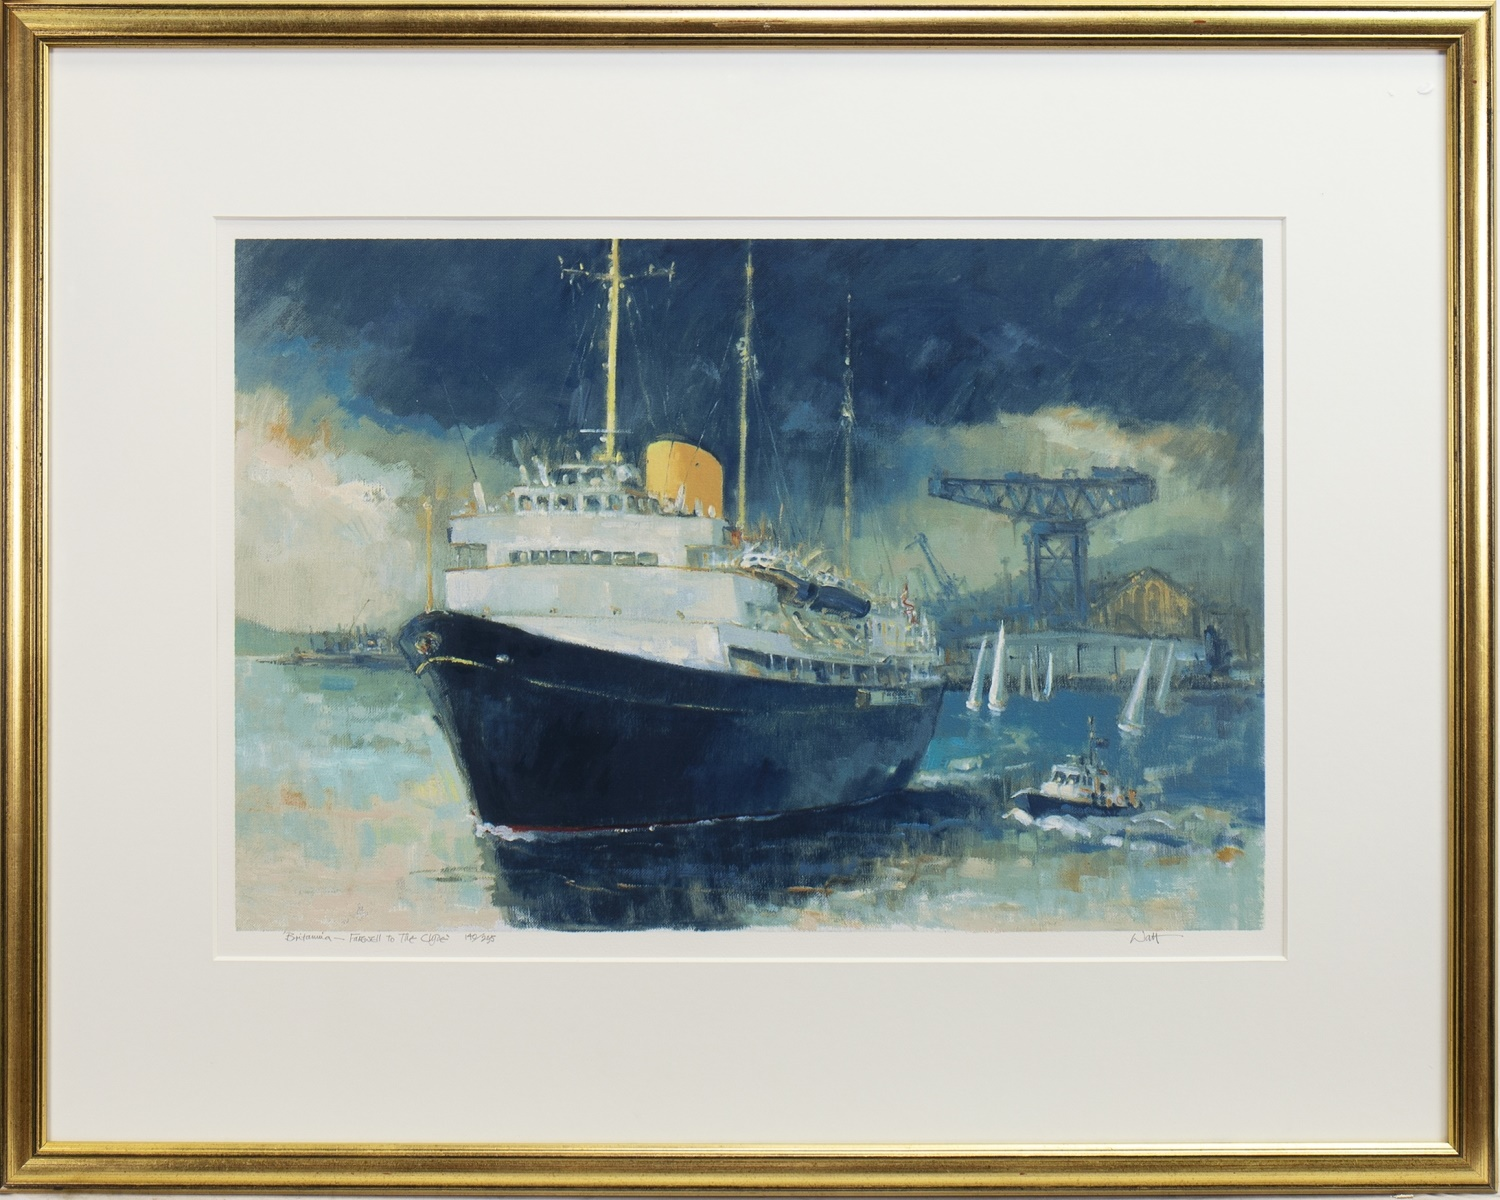 BRITANNIA, FAREWELL TO THE CLYDE, A SIGNED LIMITED EDITION PRINT BY JAMES WATT